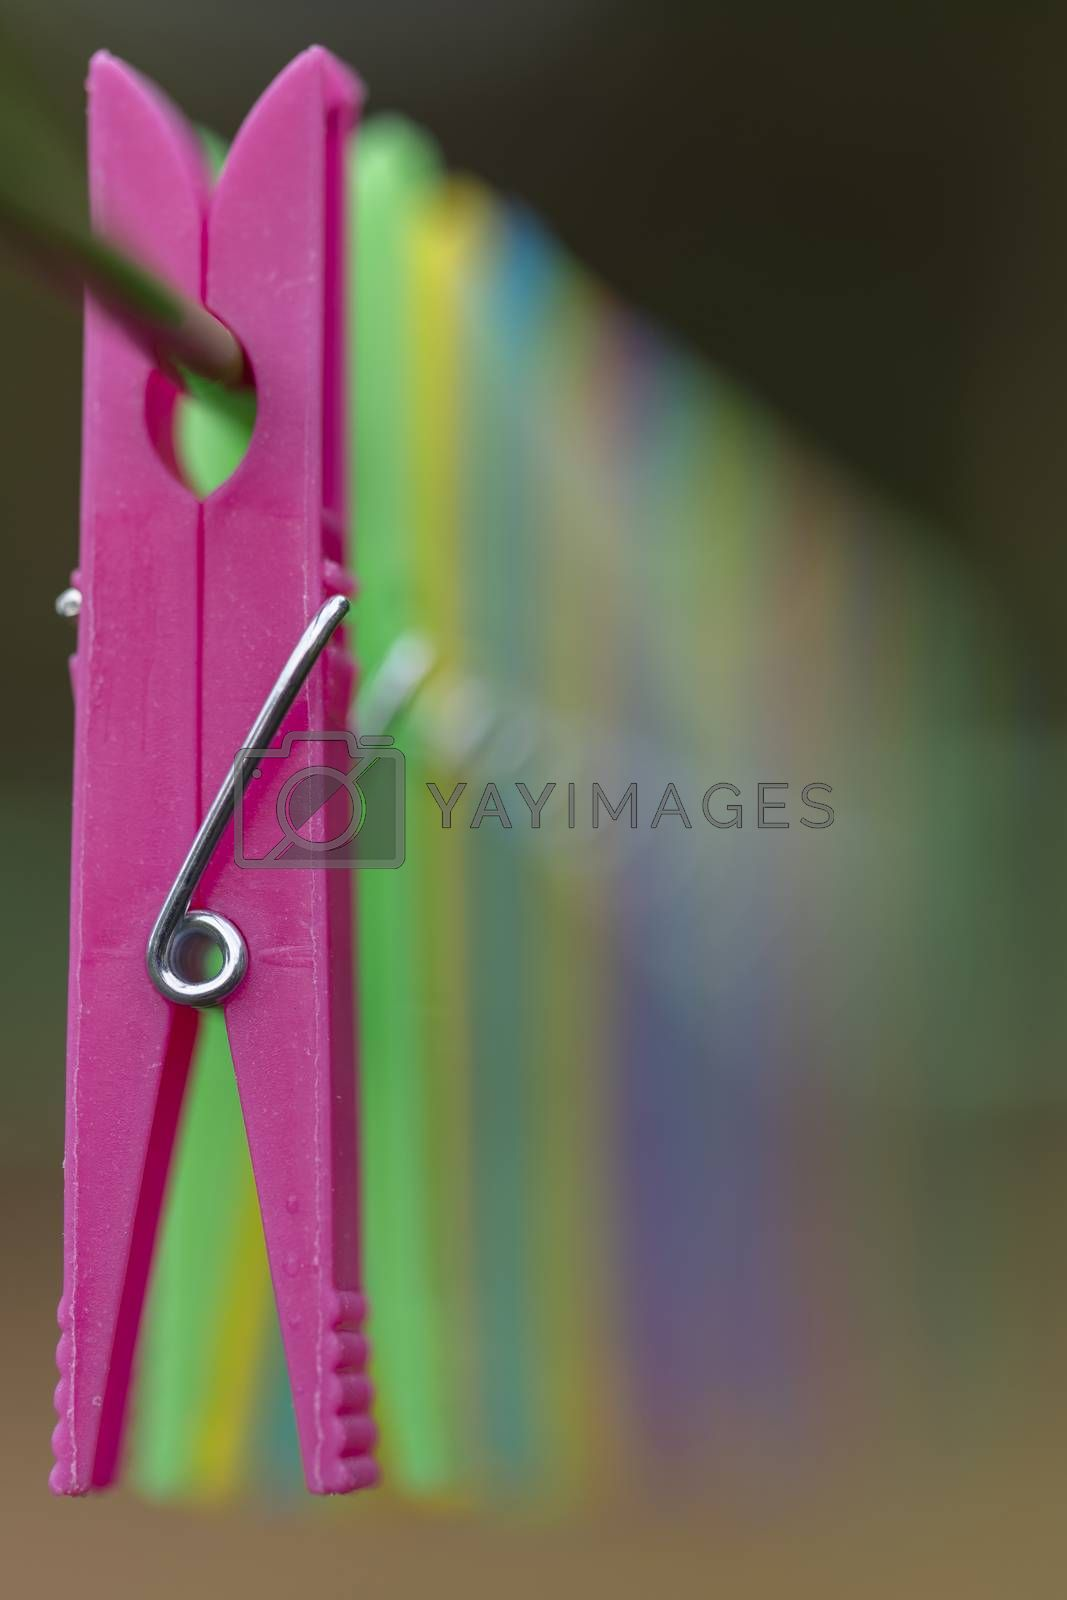 Colored clothes pegs in a row on a drying rack with little depth